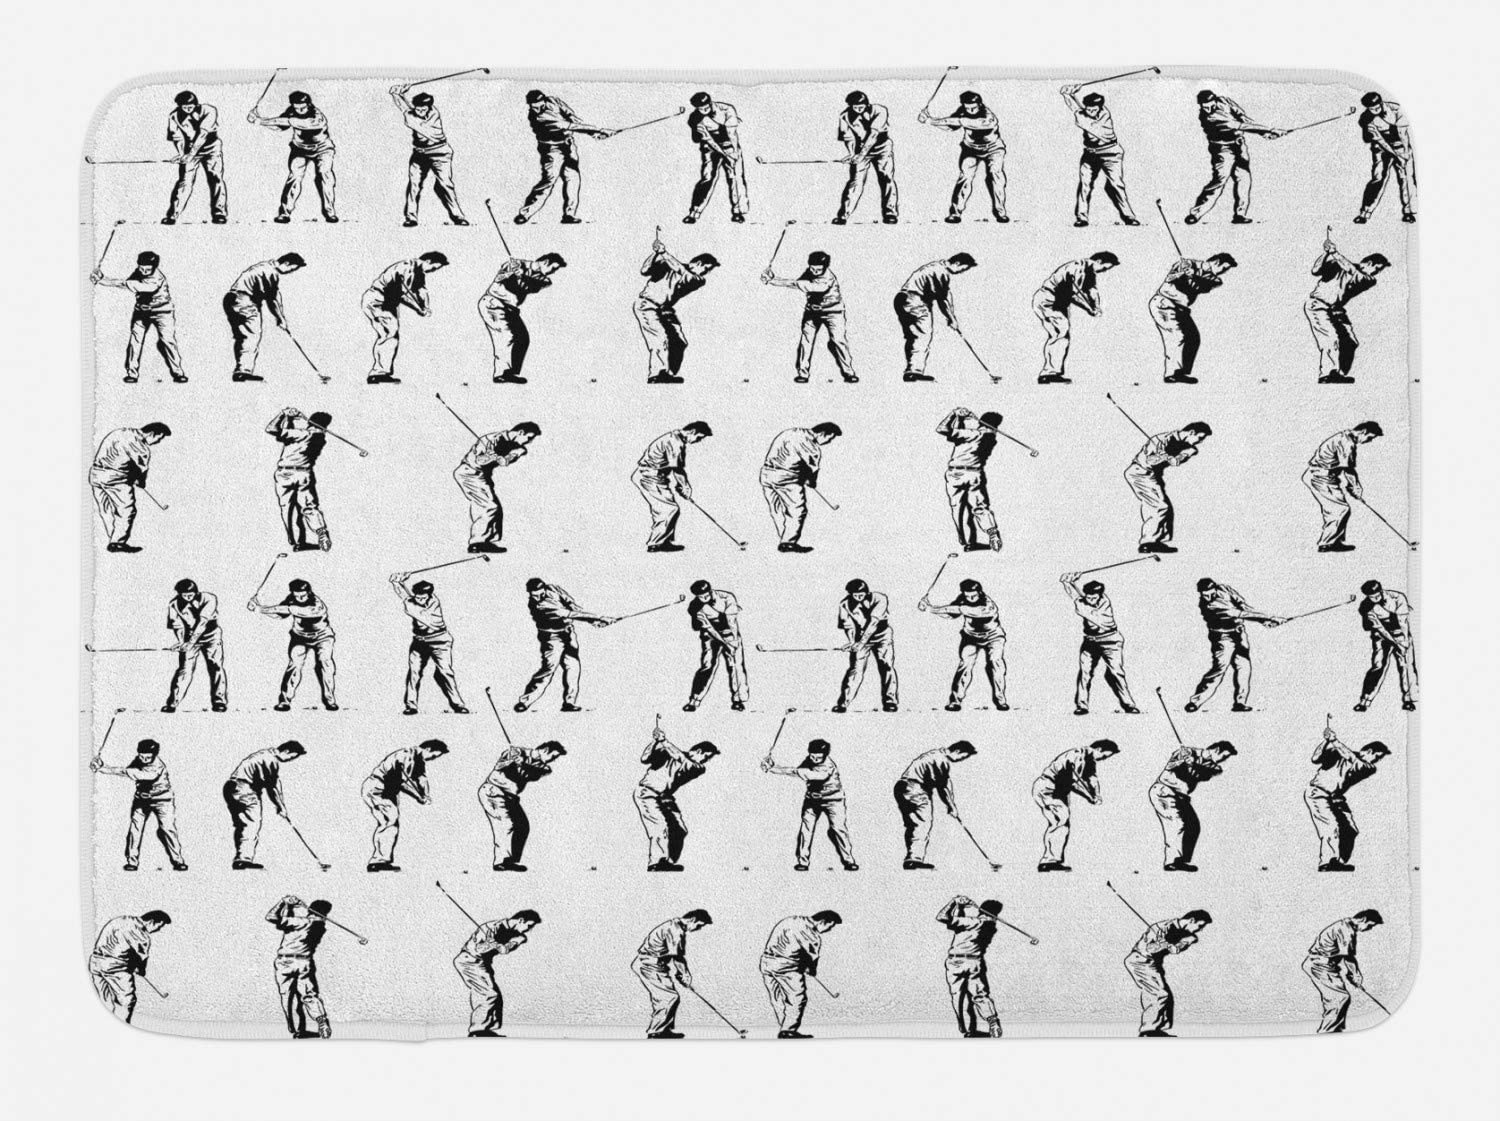 Ambesonne Golf Bath Mat, Golf Swing Shown in 14 Stages Sports Hobby Themed Sketch Art Storyboard Print, Plush Bathroom Decor Mat with Non Slip Backing, 29.5